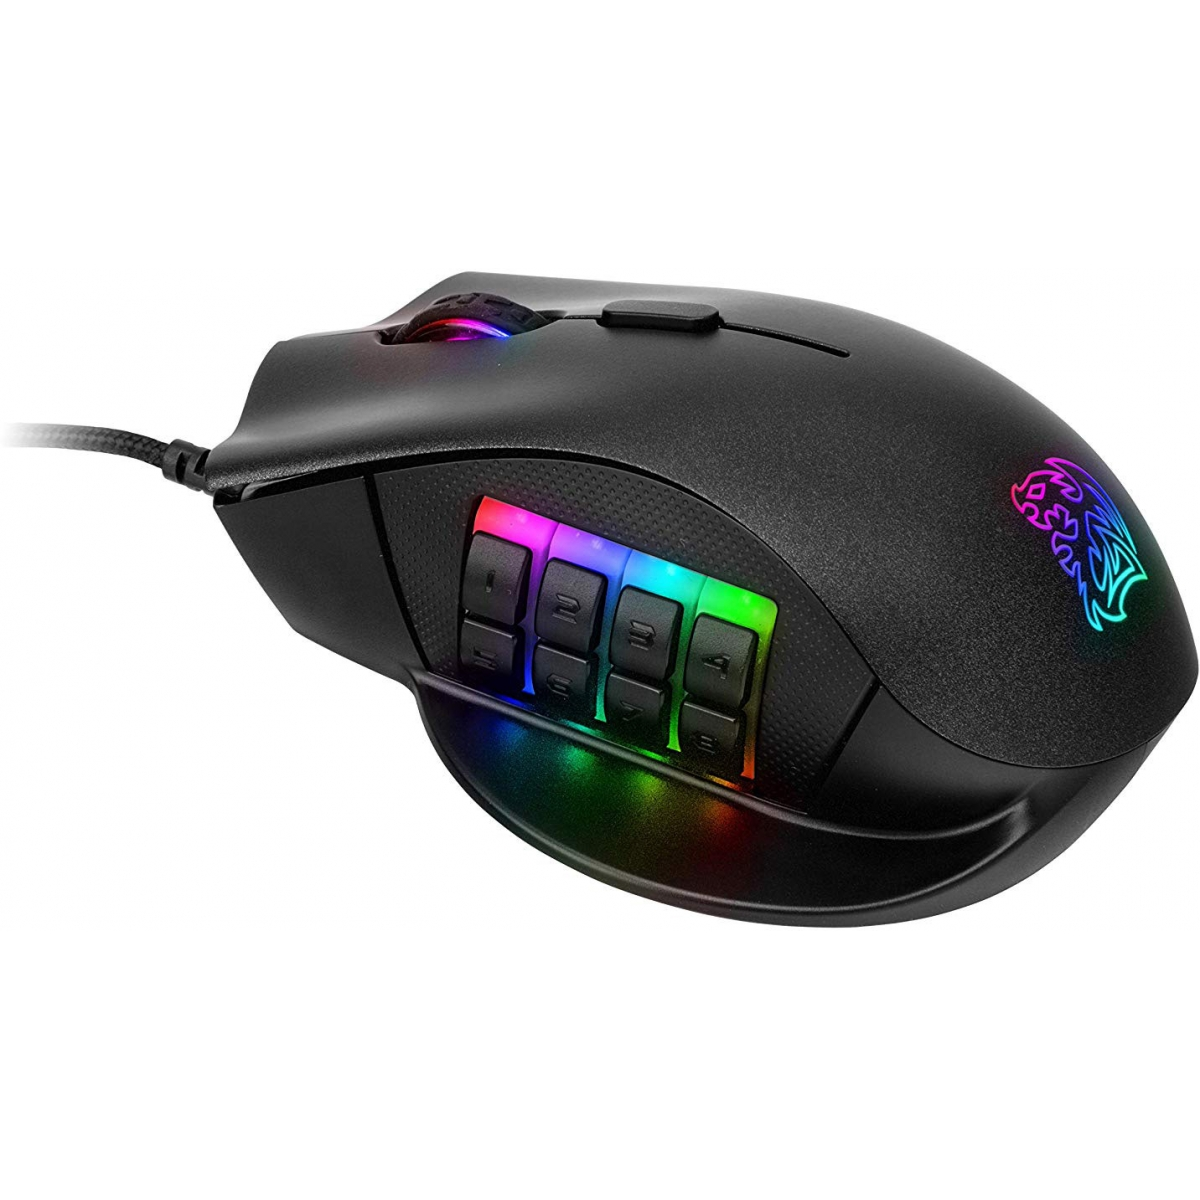 Mouse Gamer Thermaltake TT Esports Nemesis Optical RGB, MO-NMS-WDOOBK-01